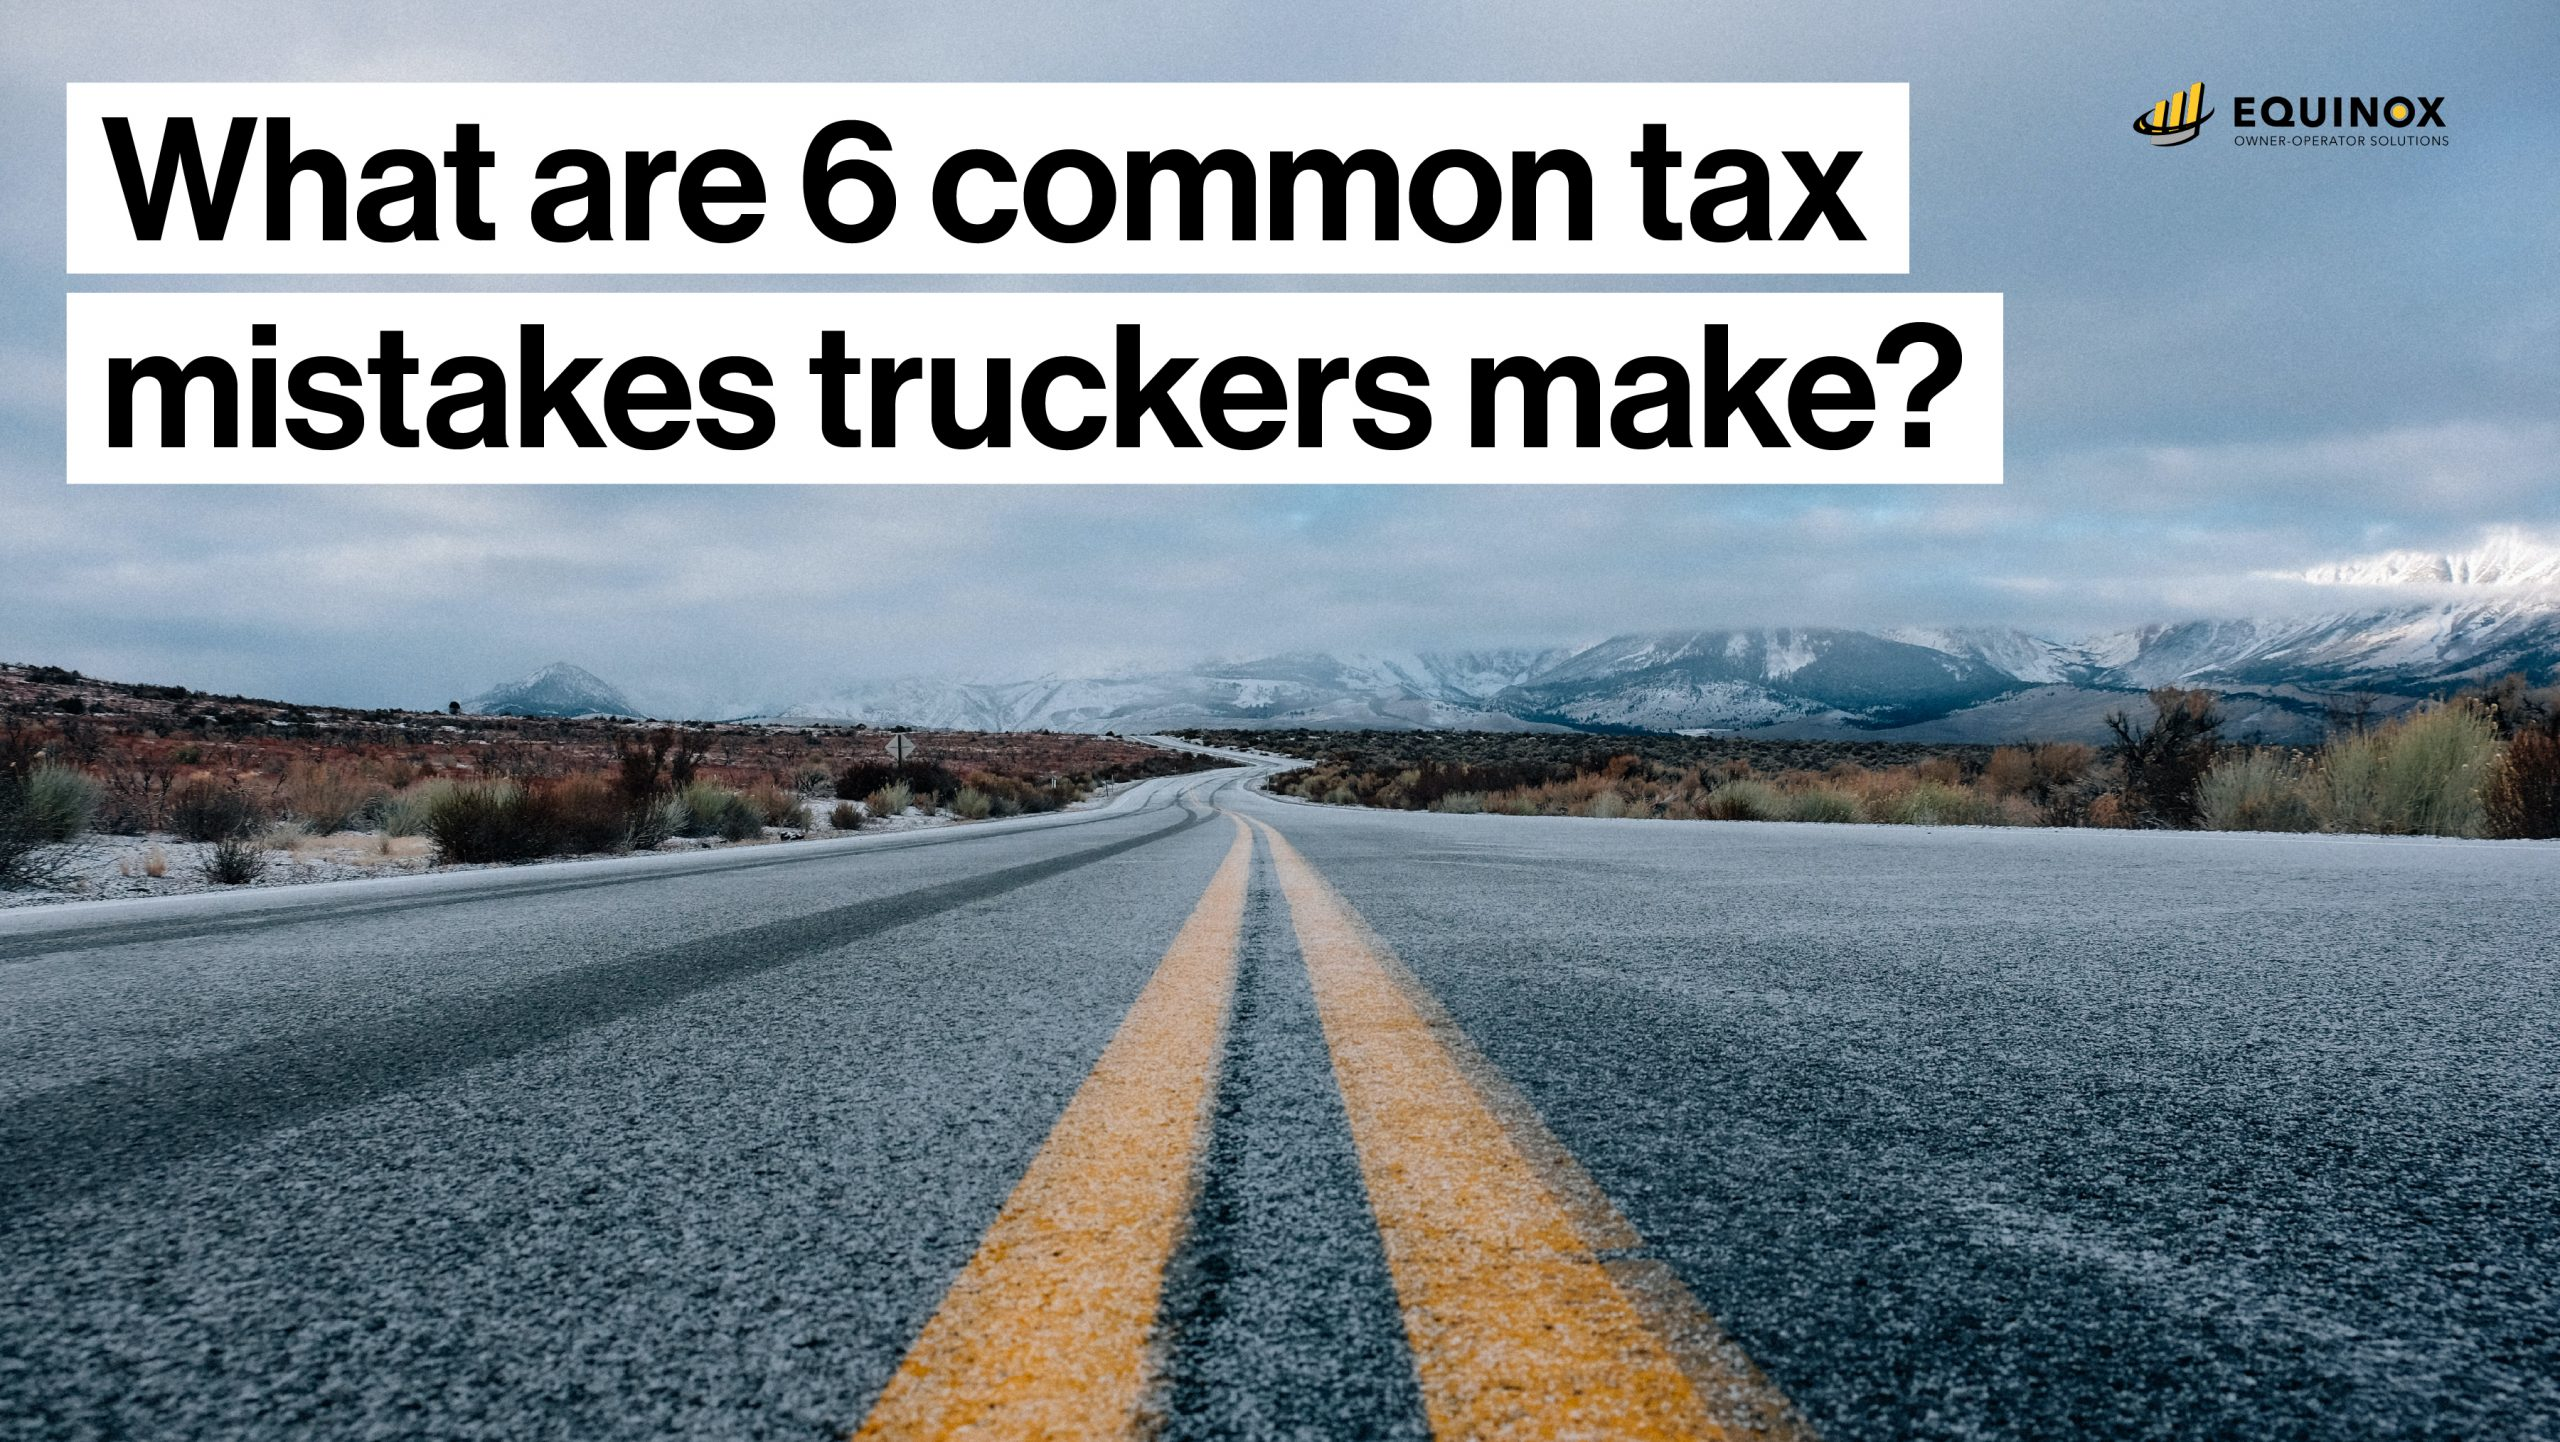 What are the most common tax mistakes truckers make?